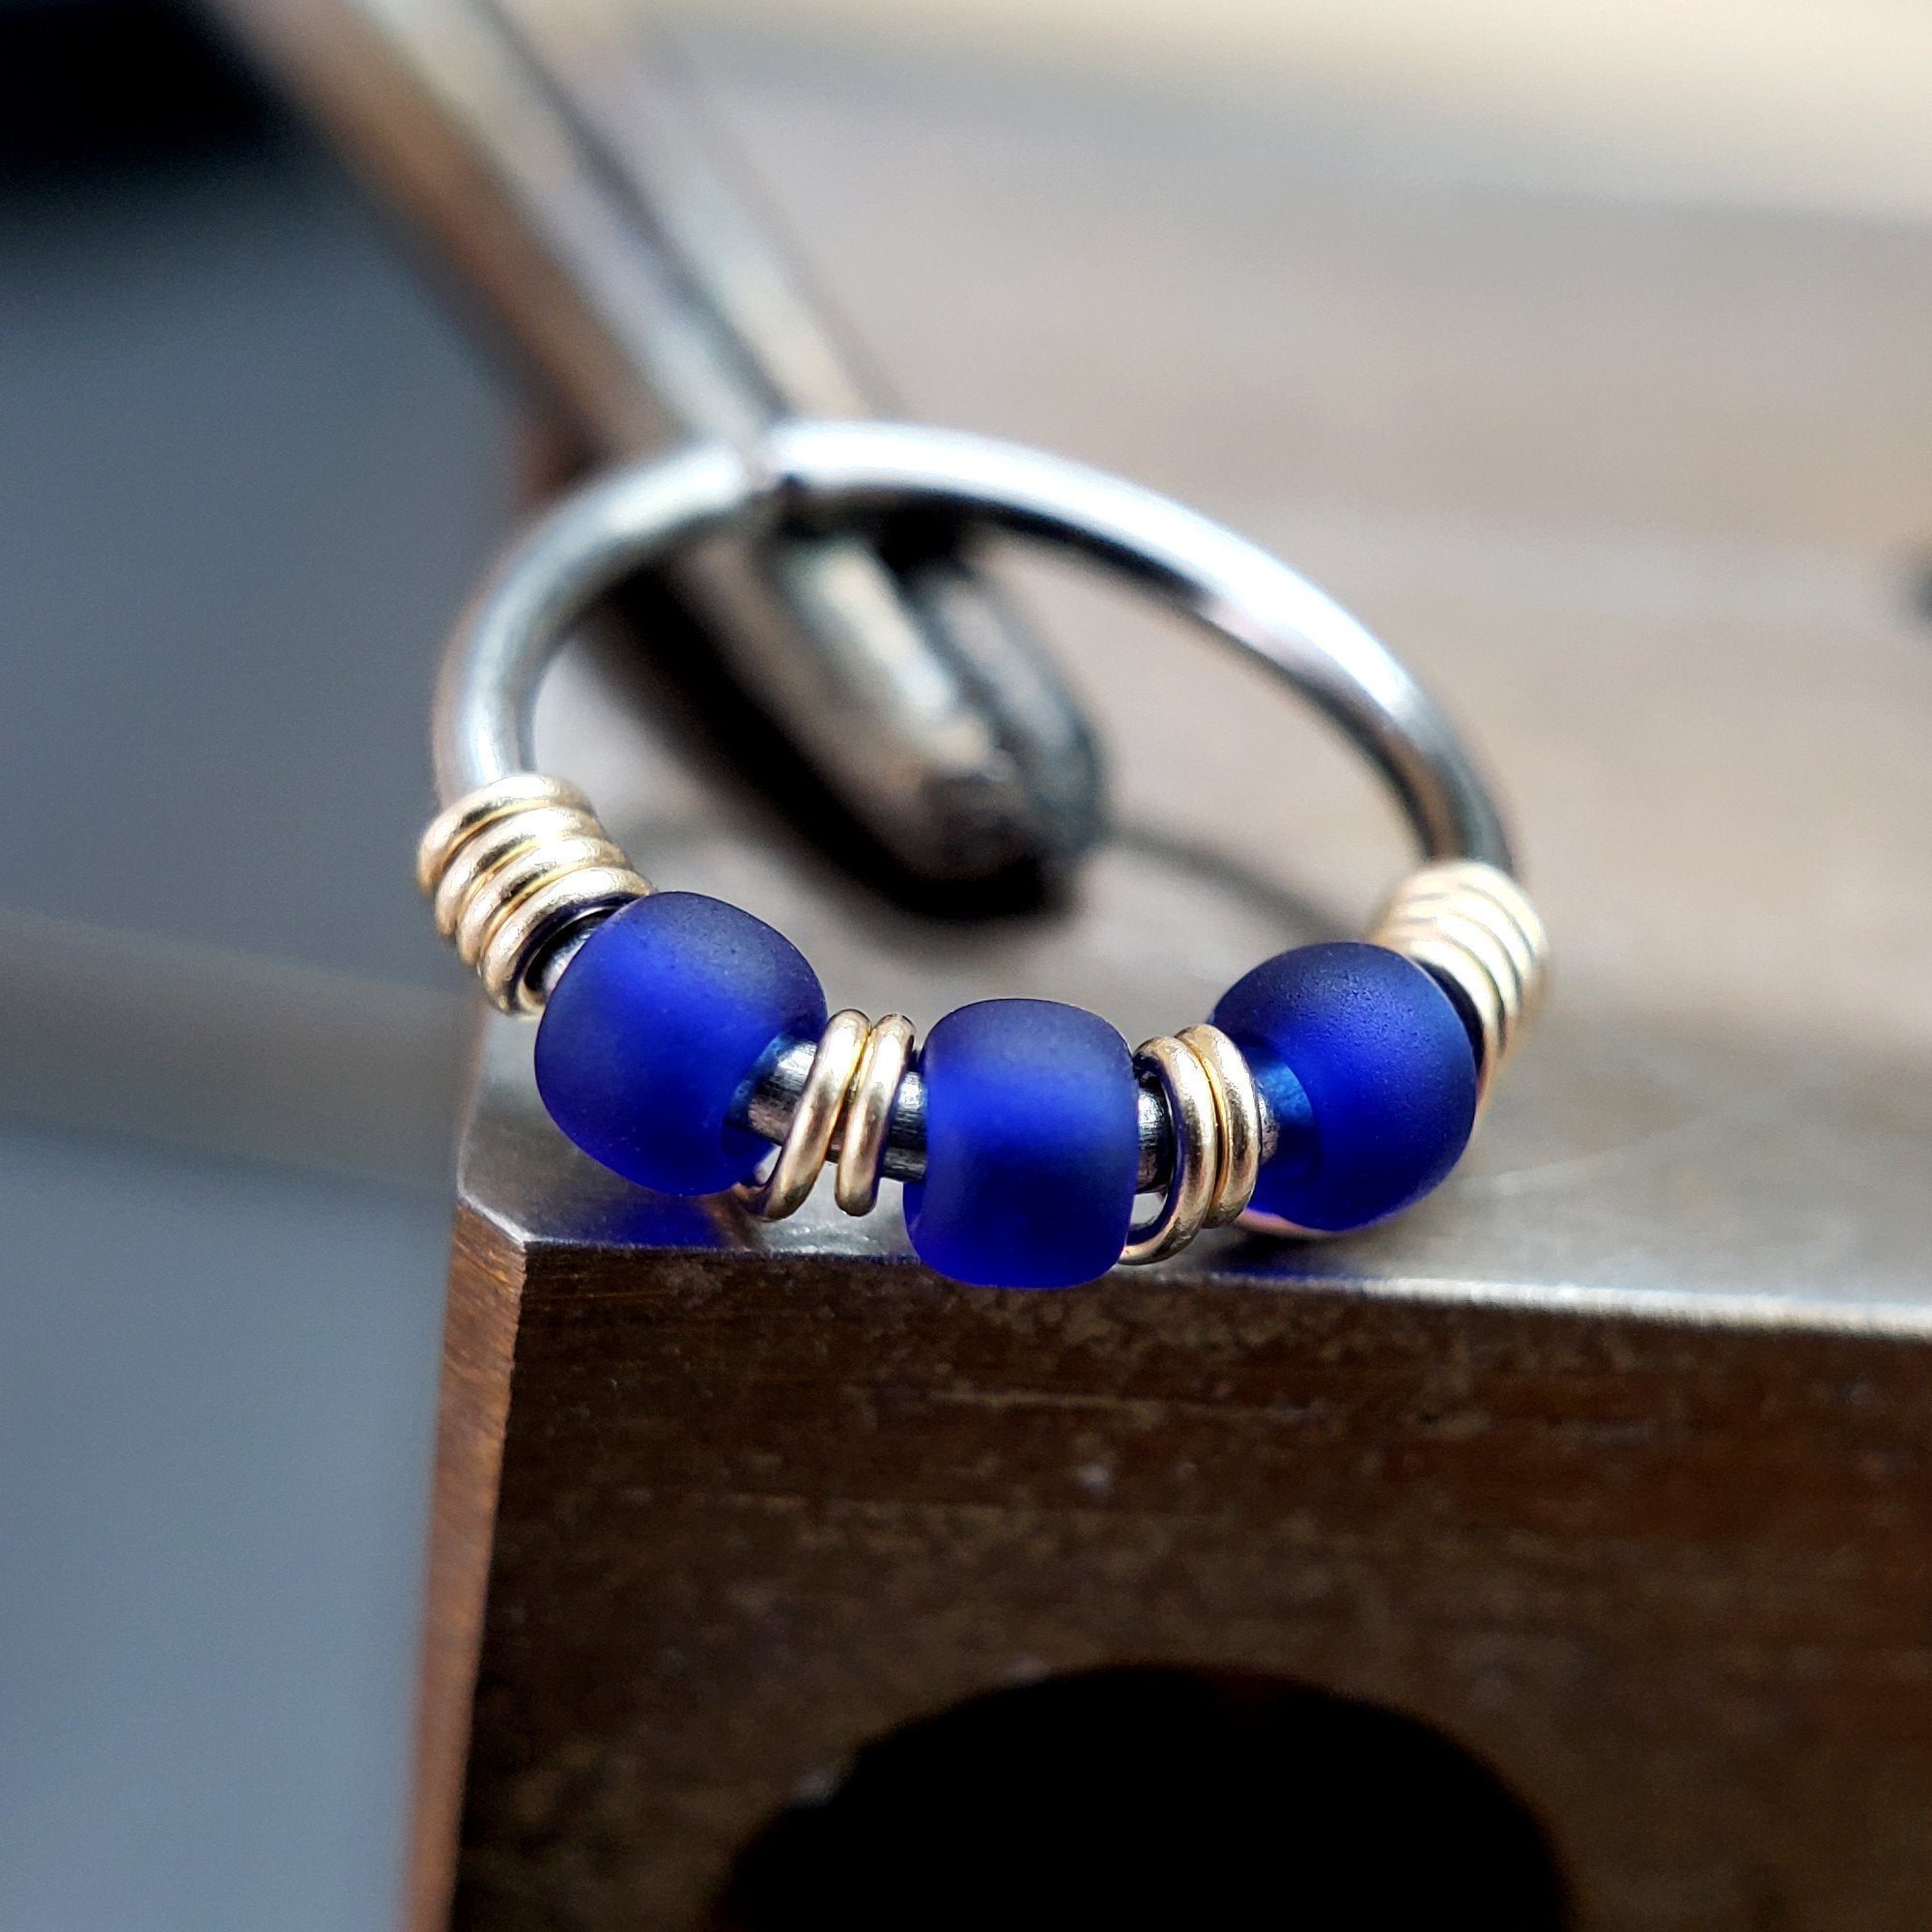 Celestial - Cobalt Blue Nose Ring Hoop - Metal Lotus